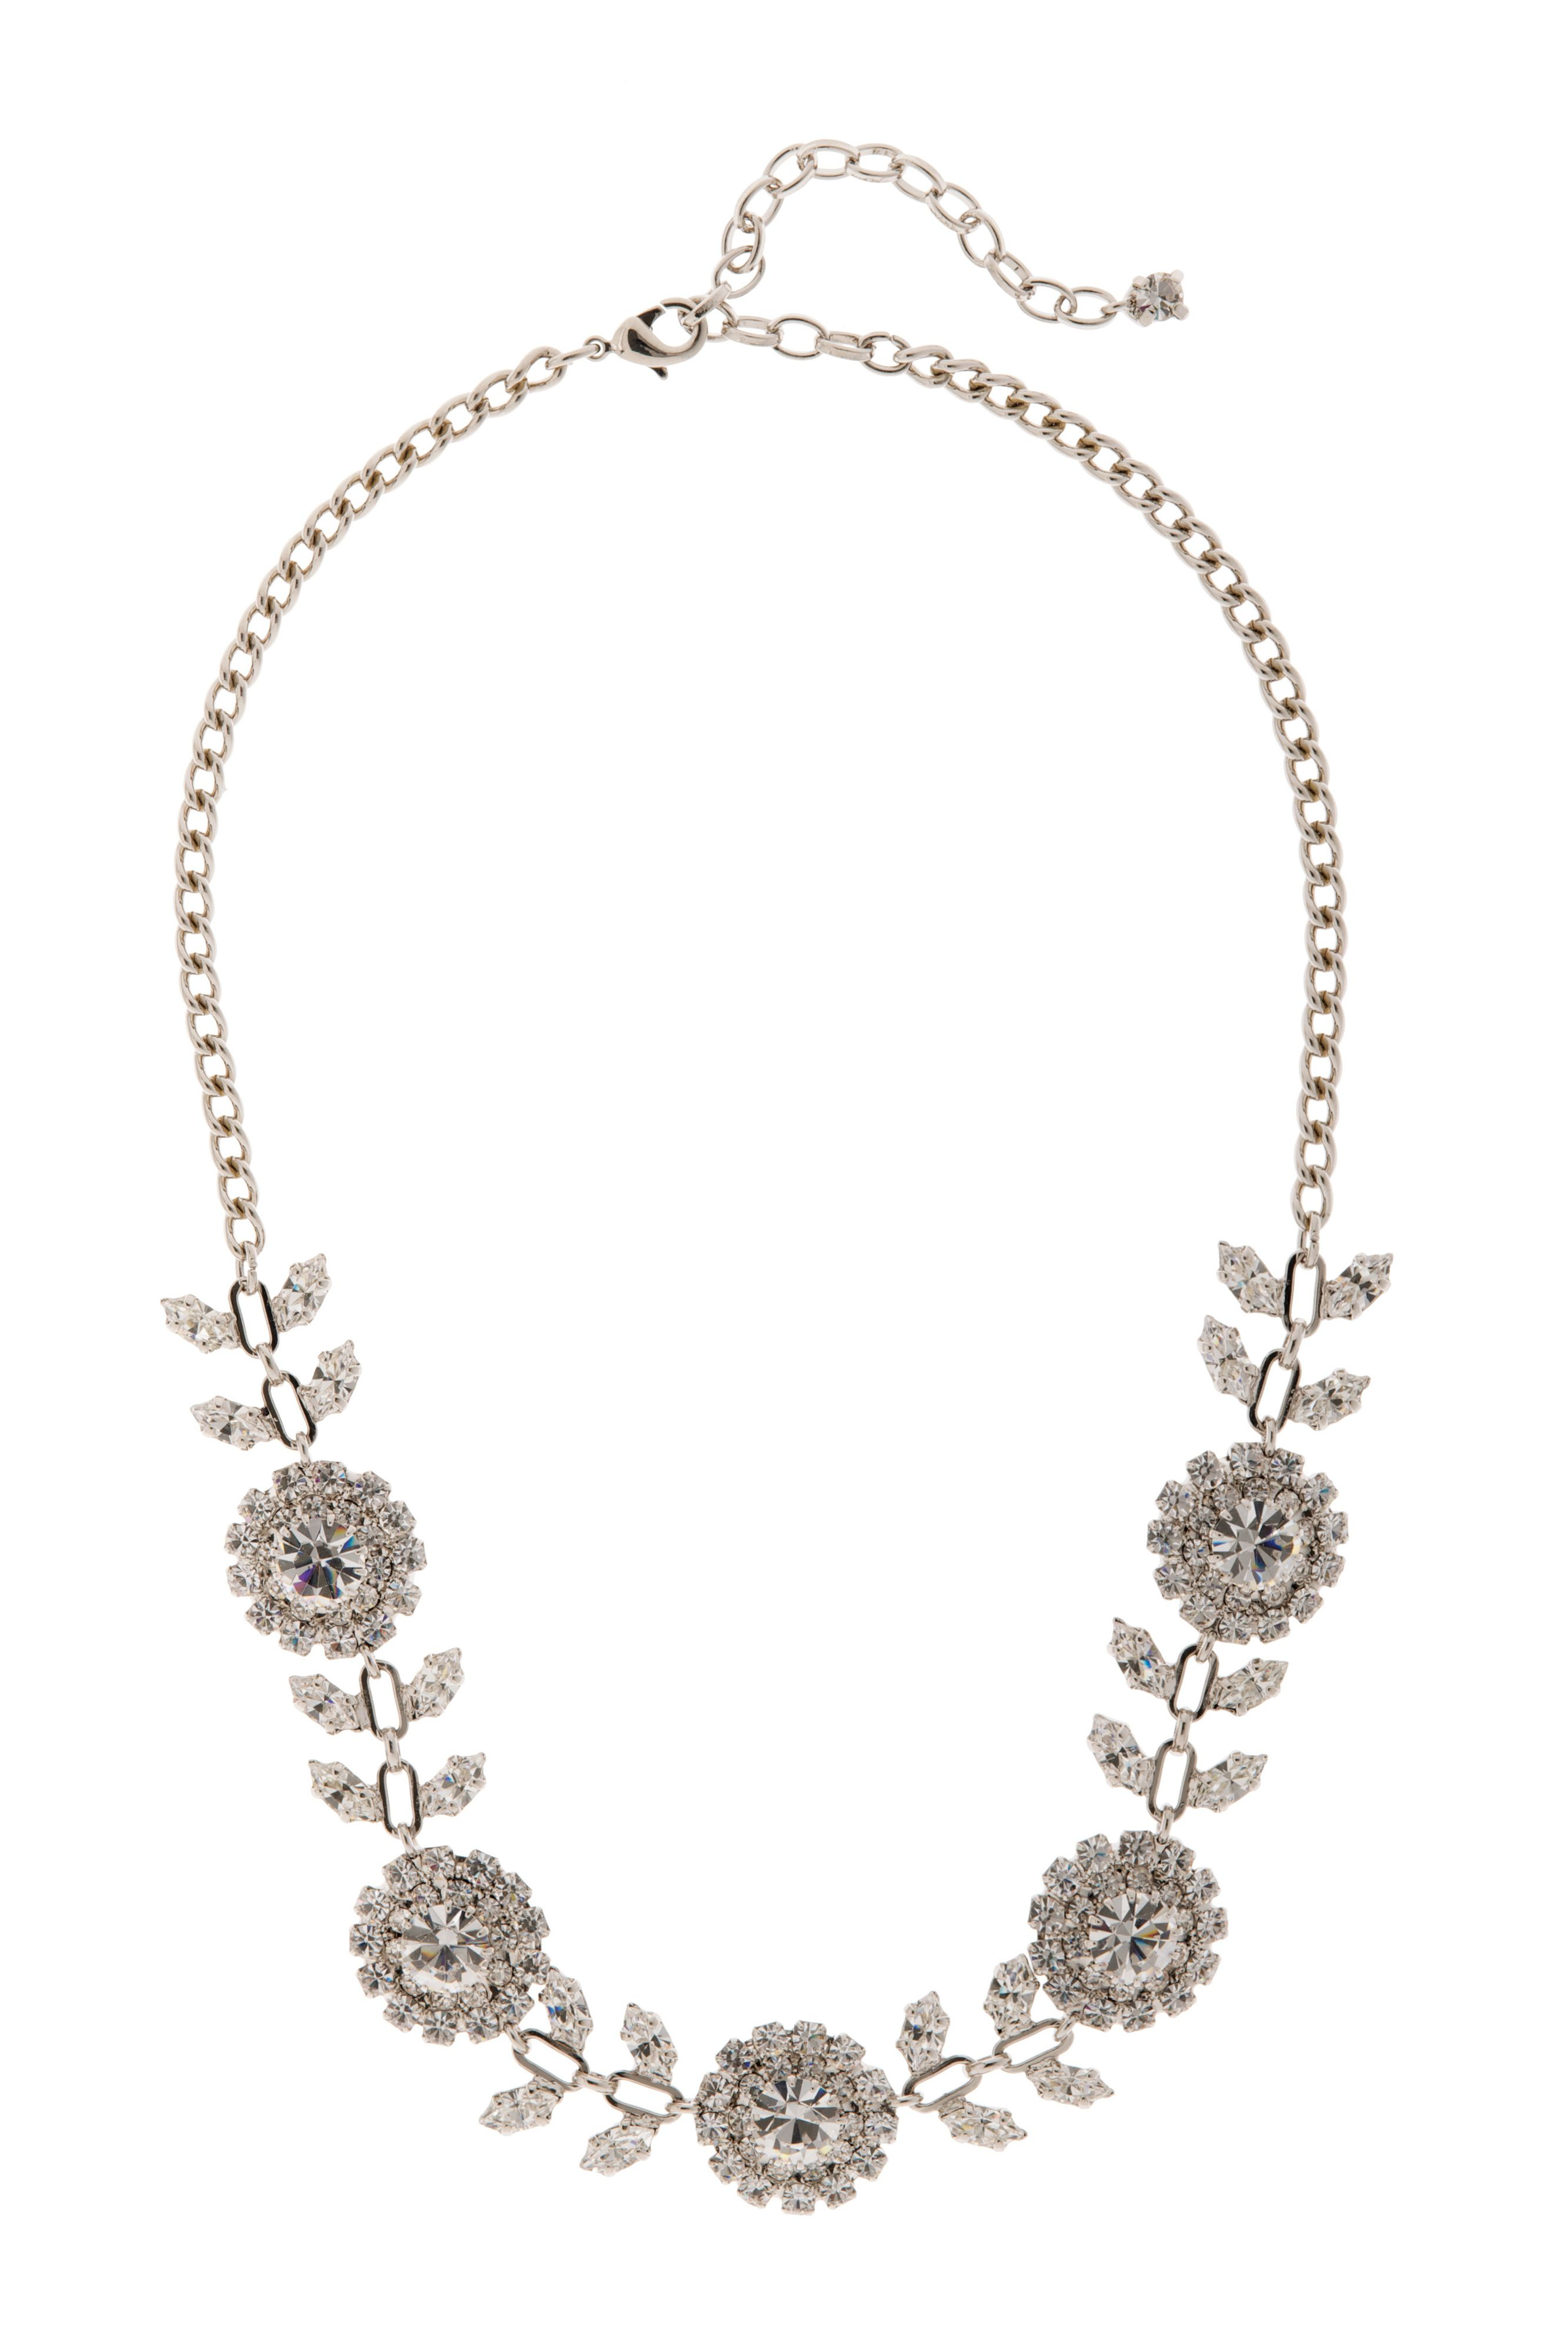 Bridal rose and petal crystal necklace